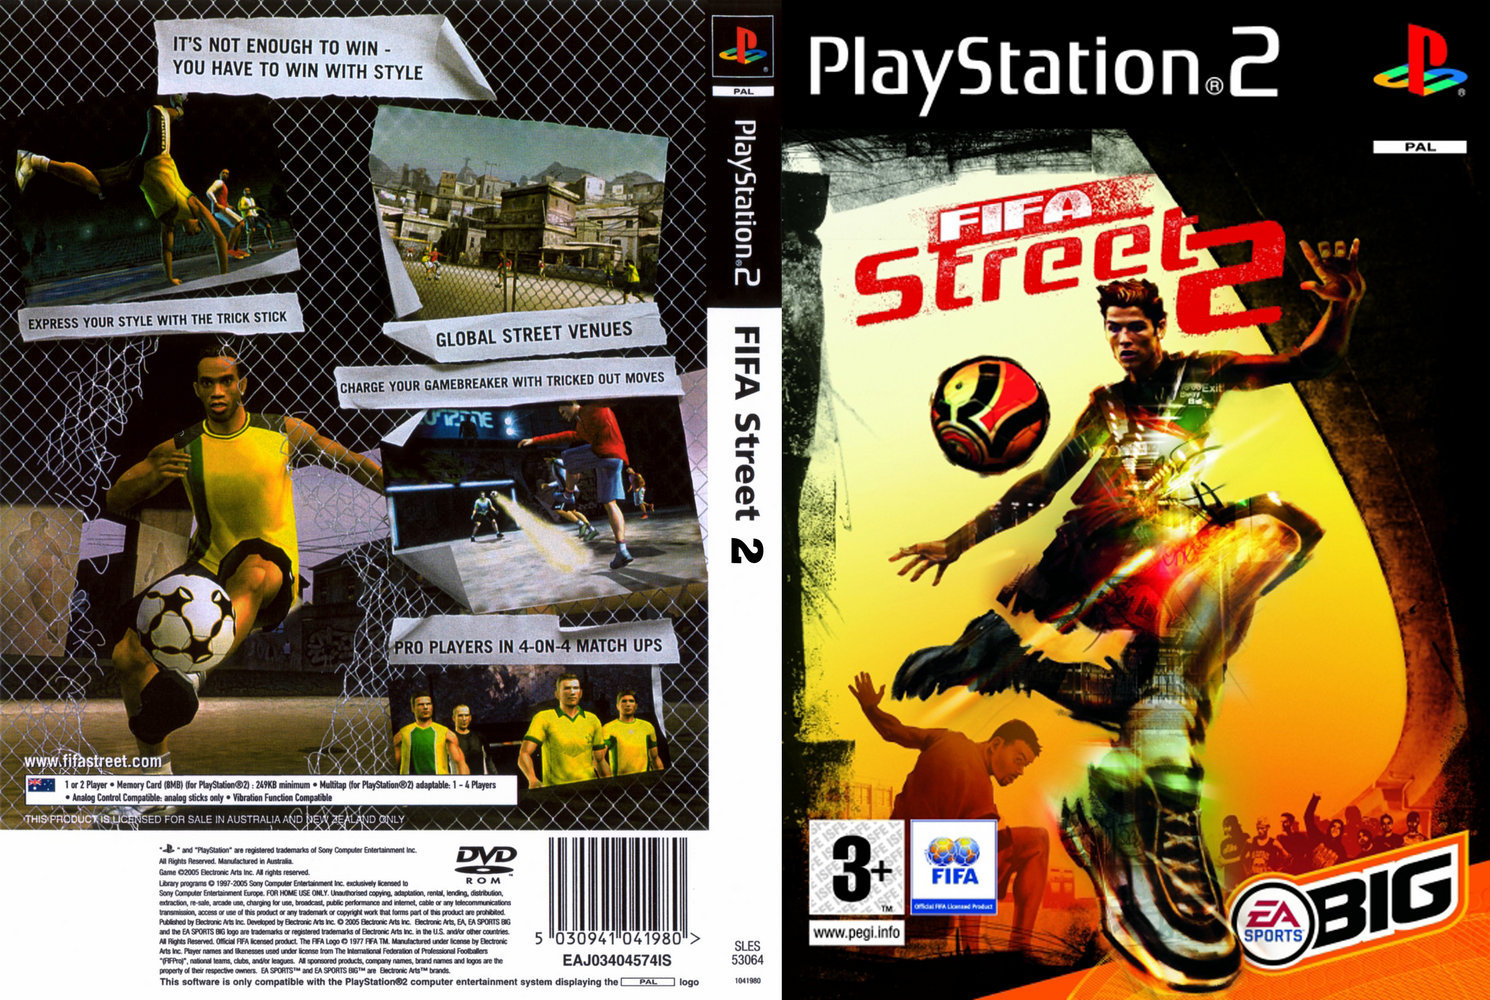 fifa street 2 ps2 iso free download